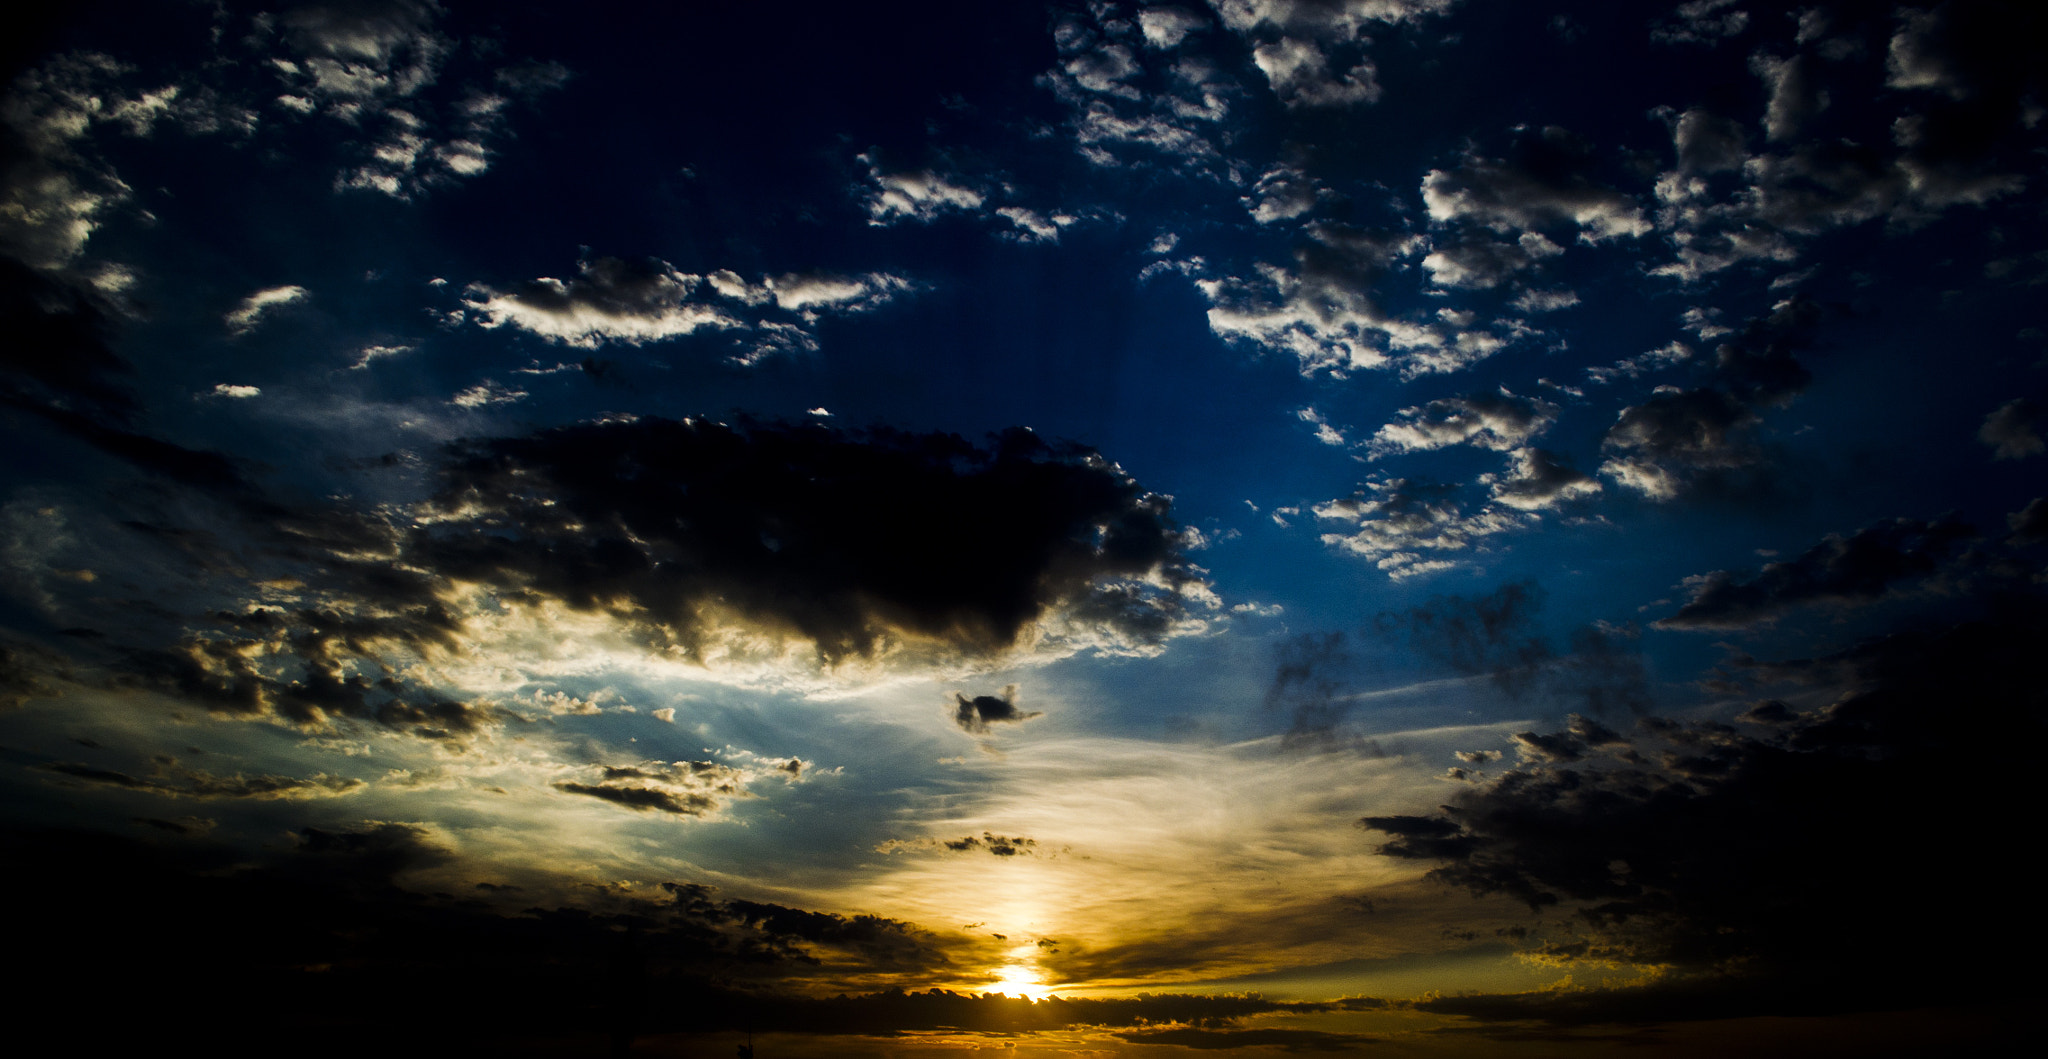 Photograph Afternoon Sky by Nishaal Daya on 500px